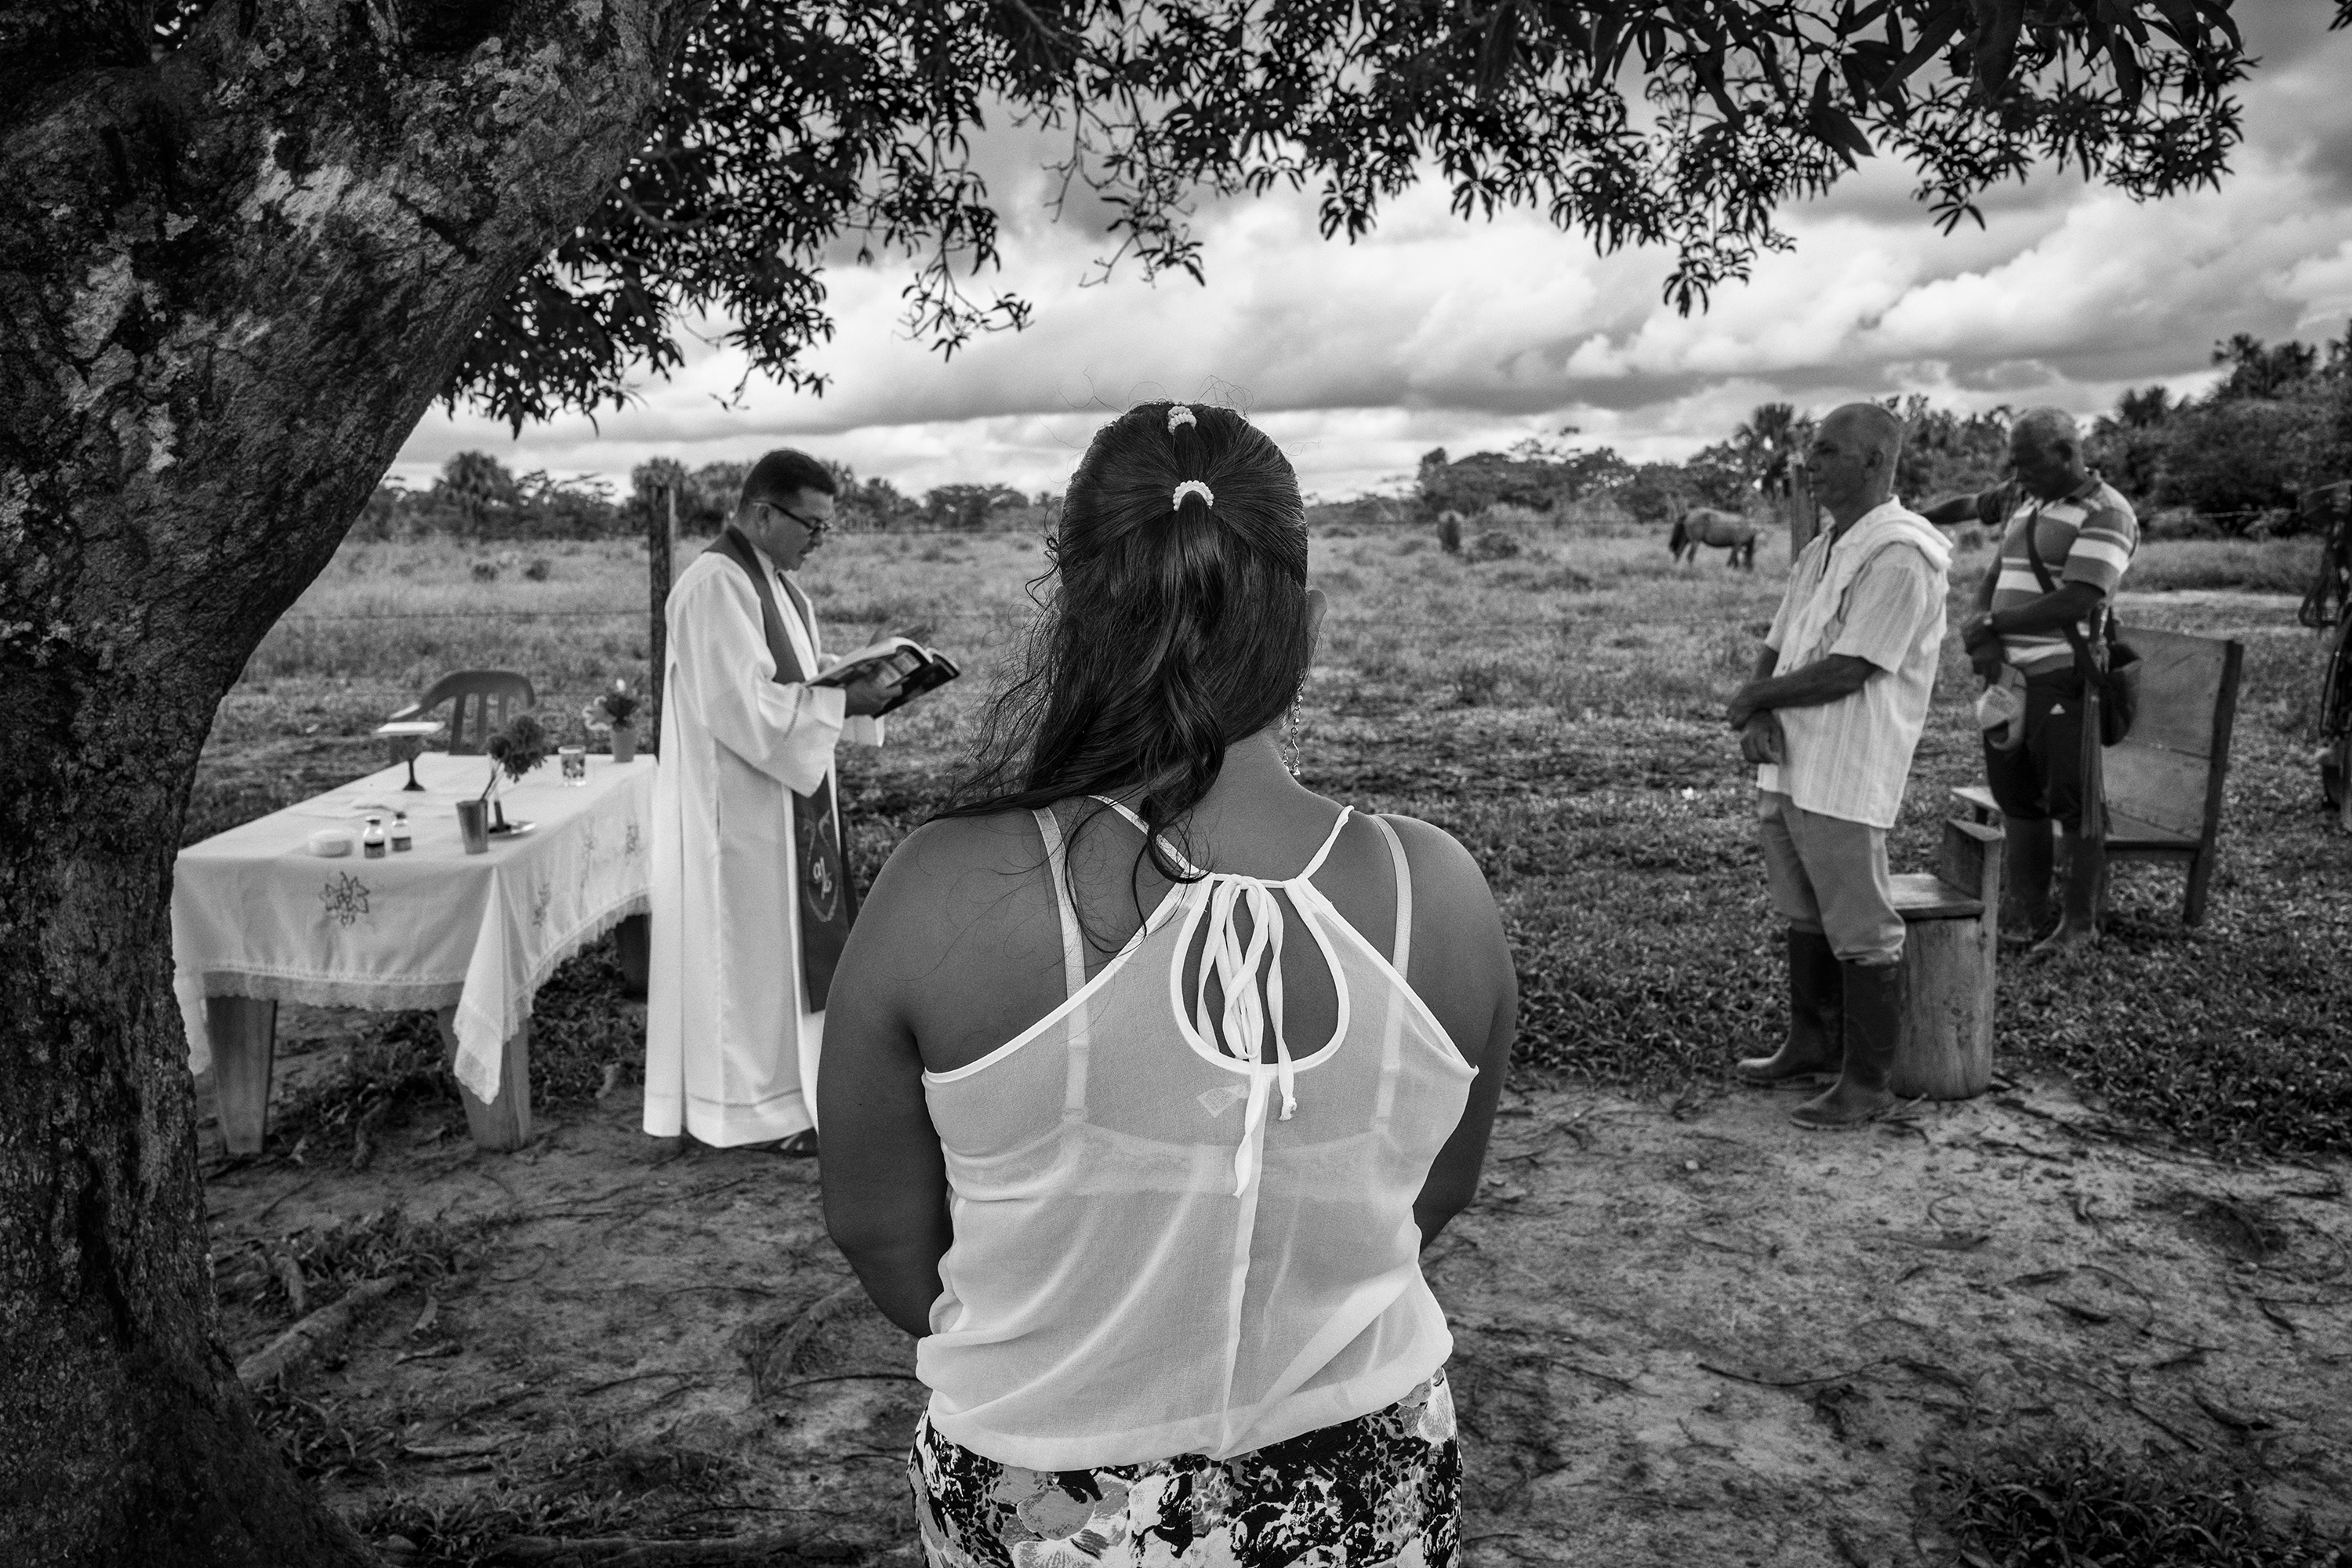 A group of civilians attend a Catholic Mass in the community of Puerto Camelias del Caguan. Both religion and FARC play central roles in communities where FARC has been the only authority for over 50 years, Aug. 24, 2016